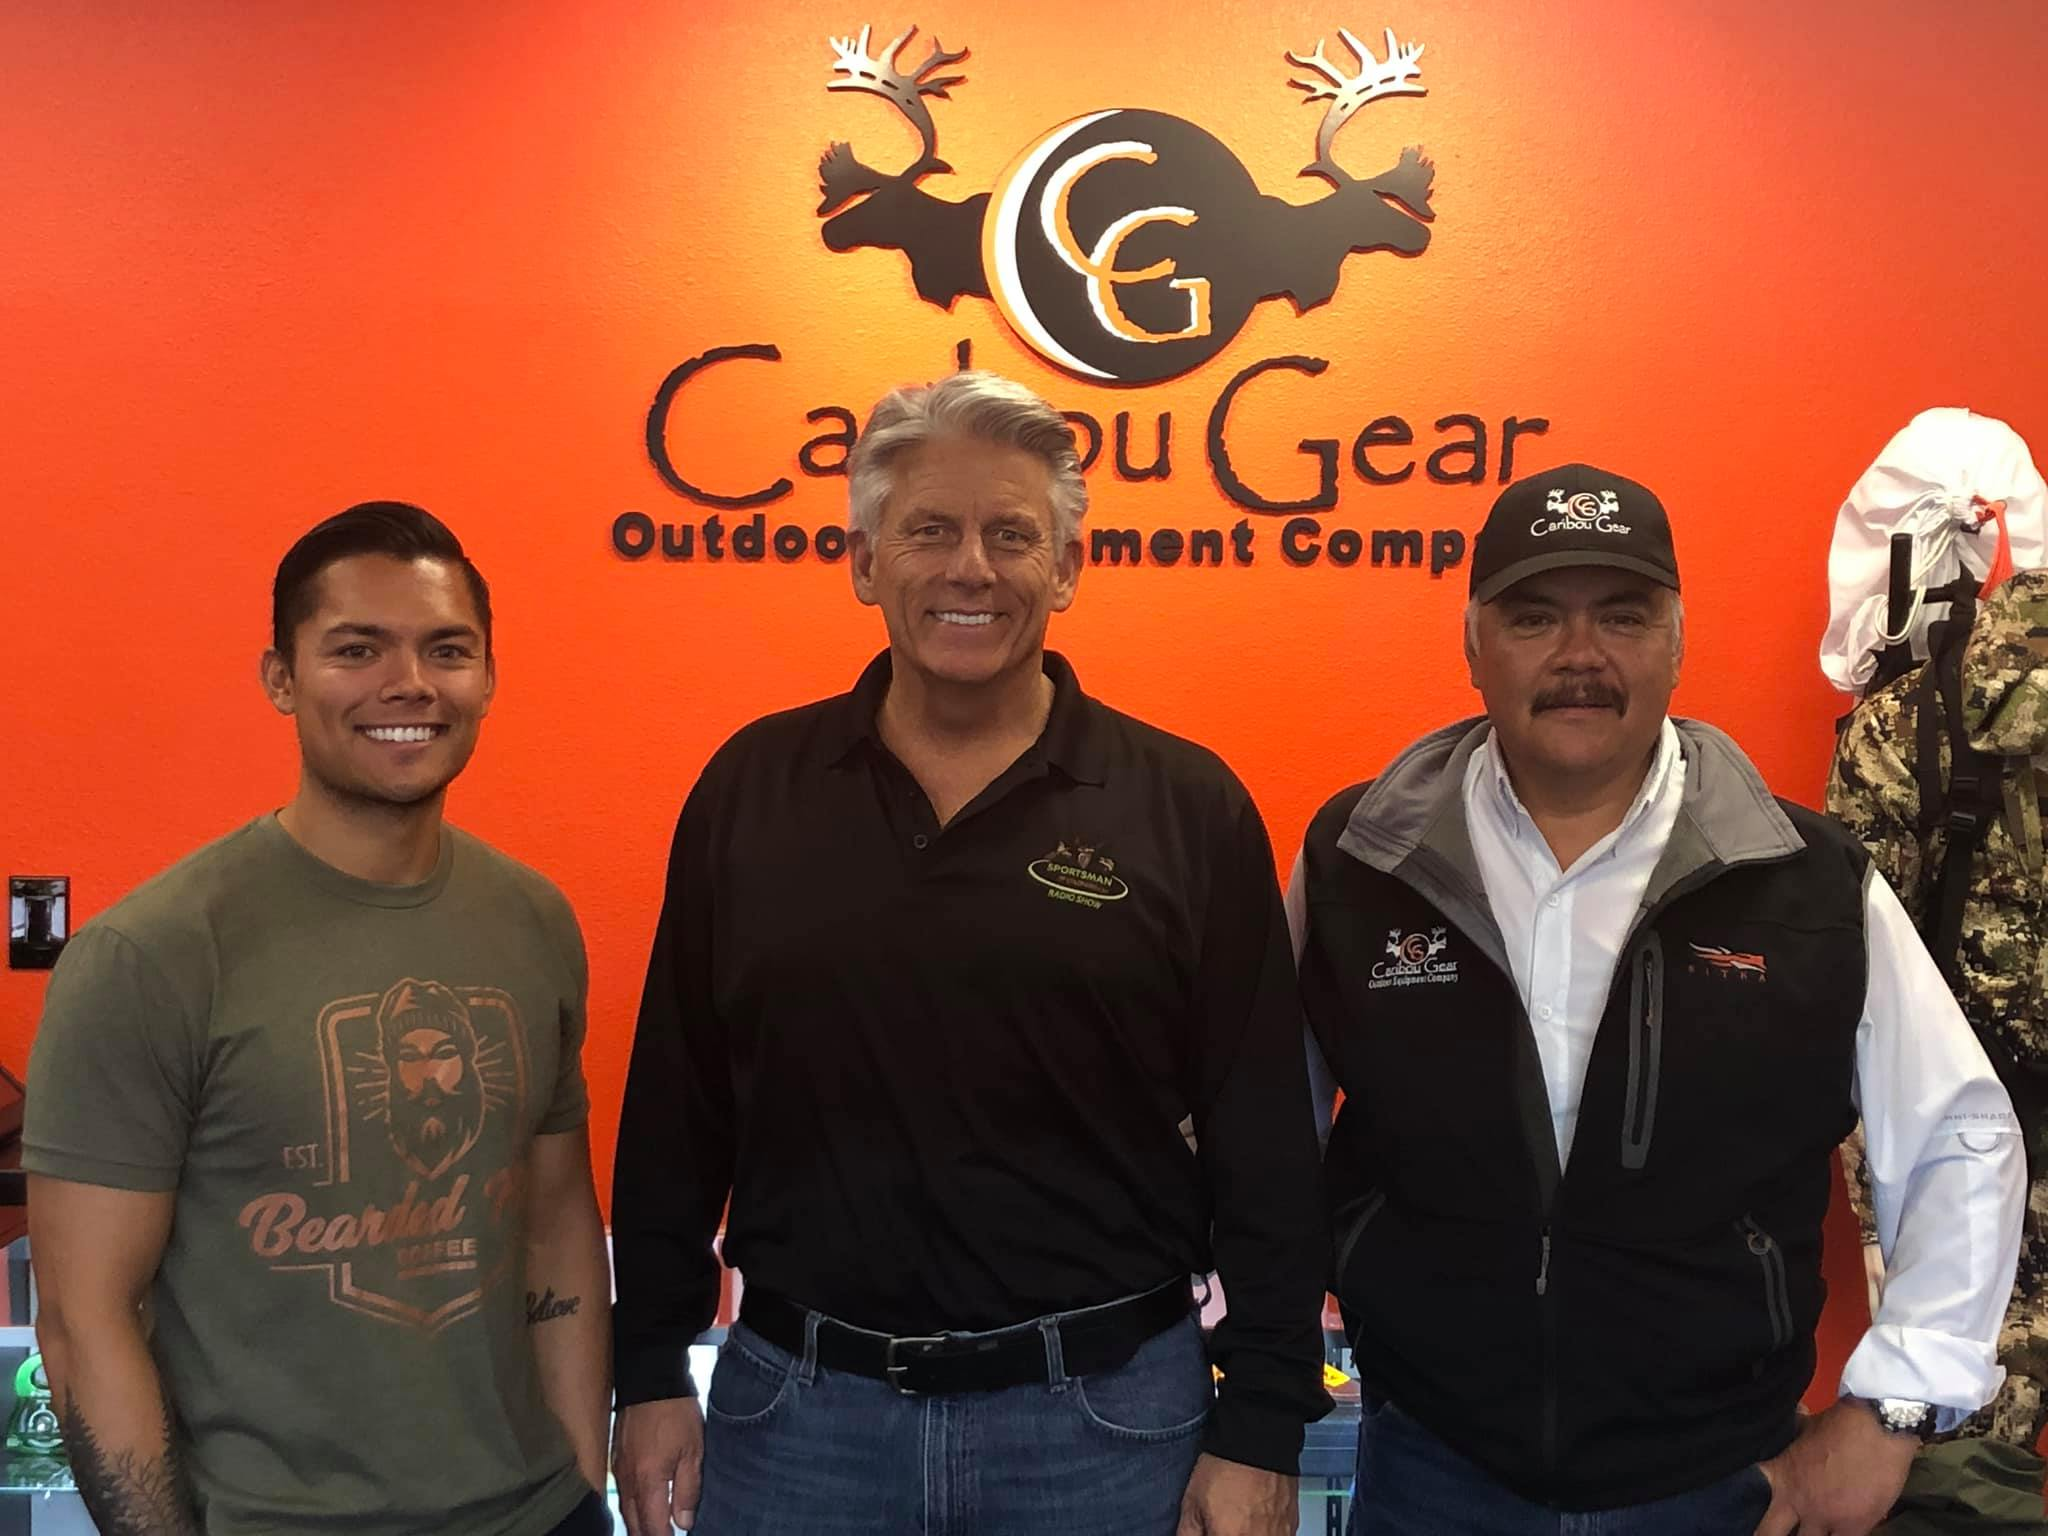 July 20, 2019: Hunting Gear Outfitters – Outdoor Buddies – Phoenix Weaponry